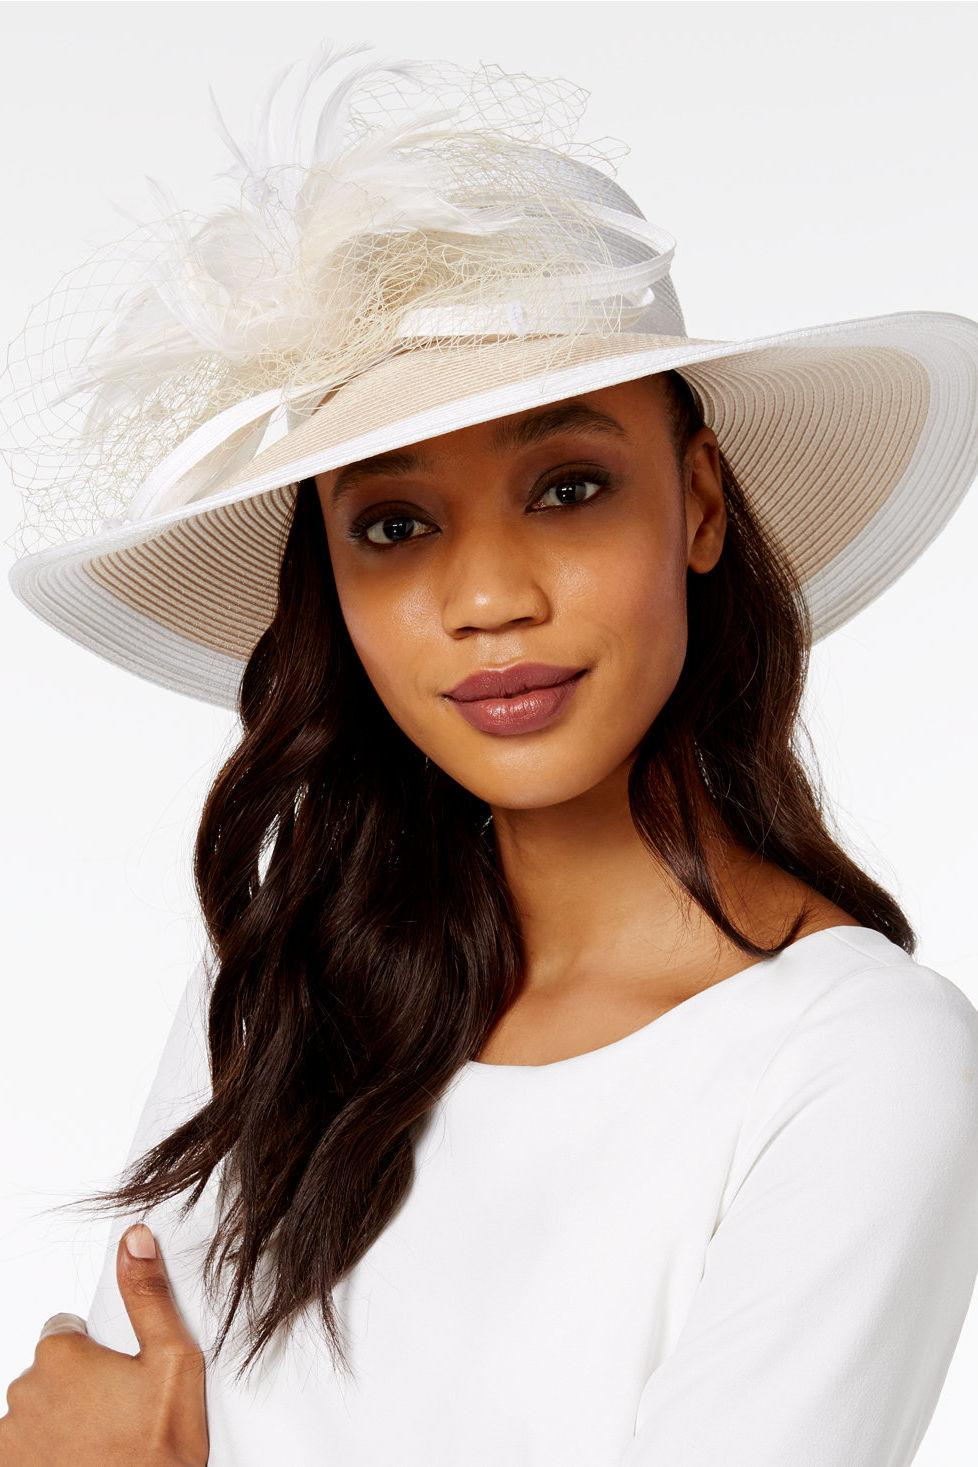 "<p><b>Buy it: $78, <a href=""https://www.macys.com/shop/product/august-hats-freesia-wide-brim-hat?ID=4373982&CategoryID=72347&selectedSize=#fn=sp%3D1%26spc%3D21%26ruleId%3D52%26slotId%3D19"" rel=""nofollow noopener"" target=""_blank"" data-ylk=""slk:macys.com"" class=""link rapid-noclick-resp"">macys.com</a></b></p> <p>We love the understated, two-tone color scheme of this church hat.</p>"